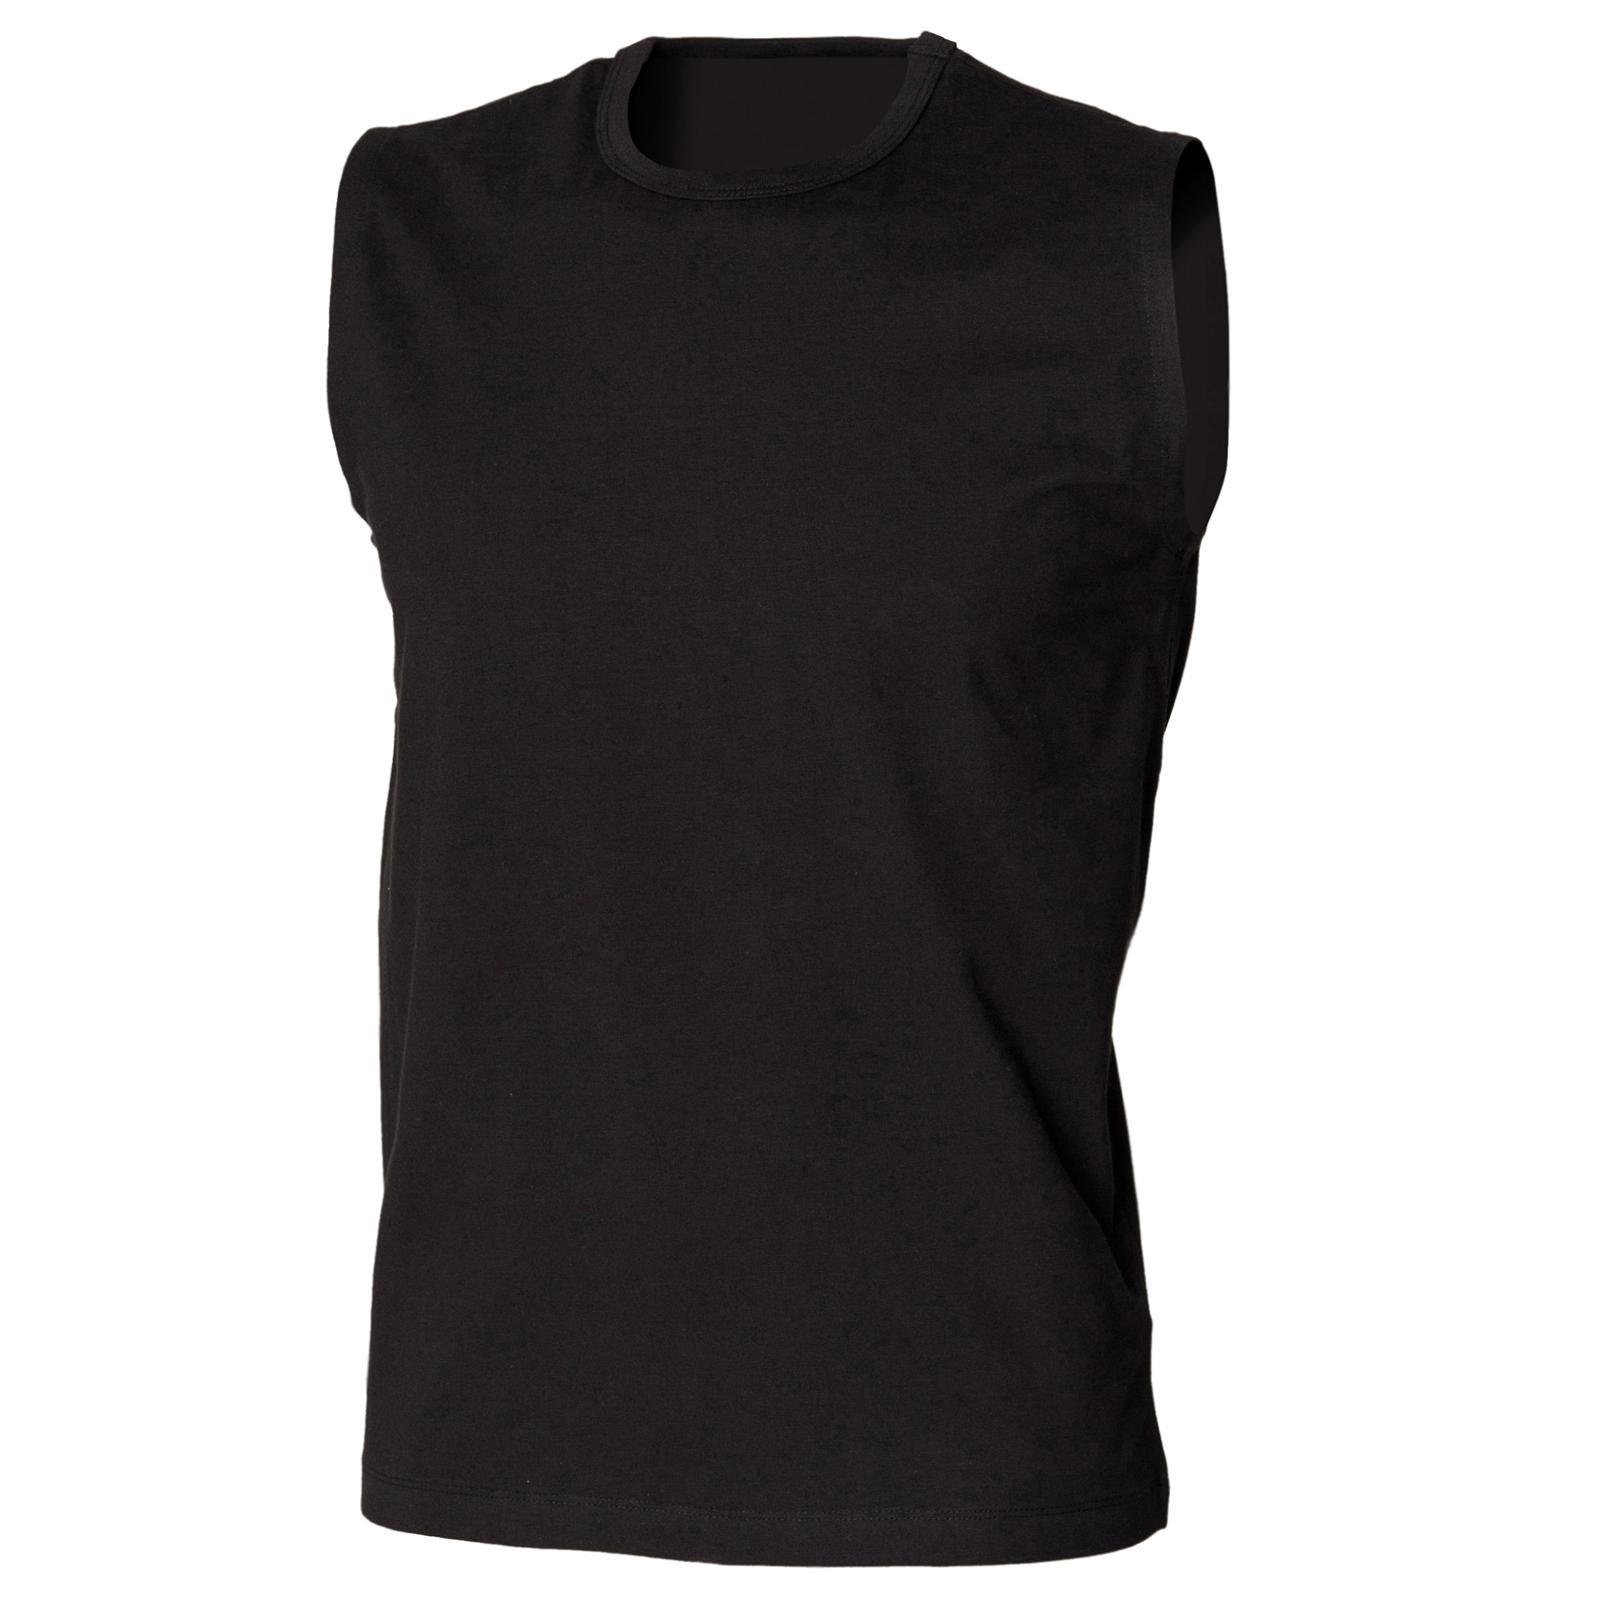 New Skinni Fit Mens Stretch Sleeveless T Shirt Vest Top In